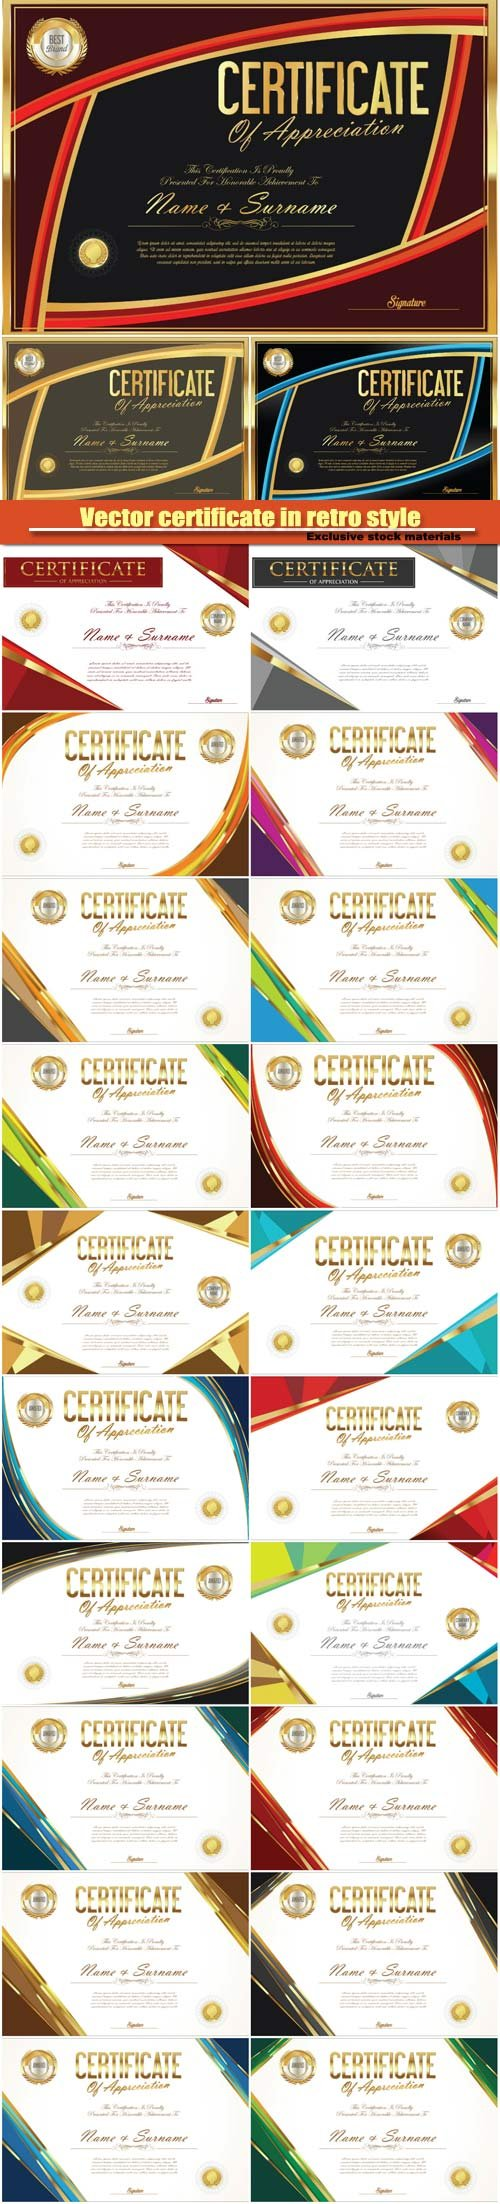 Vector certificate with a gold design in retro style